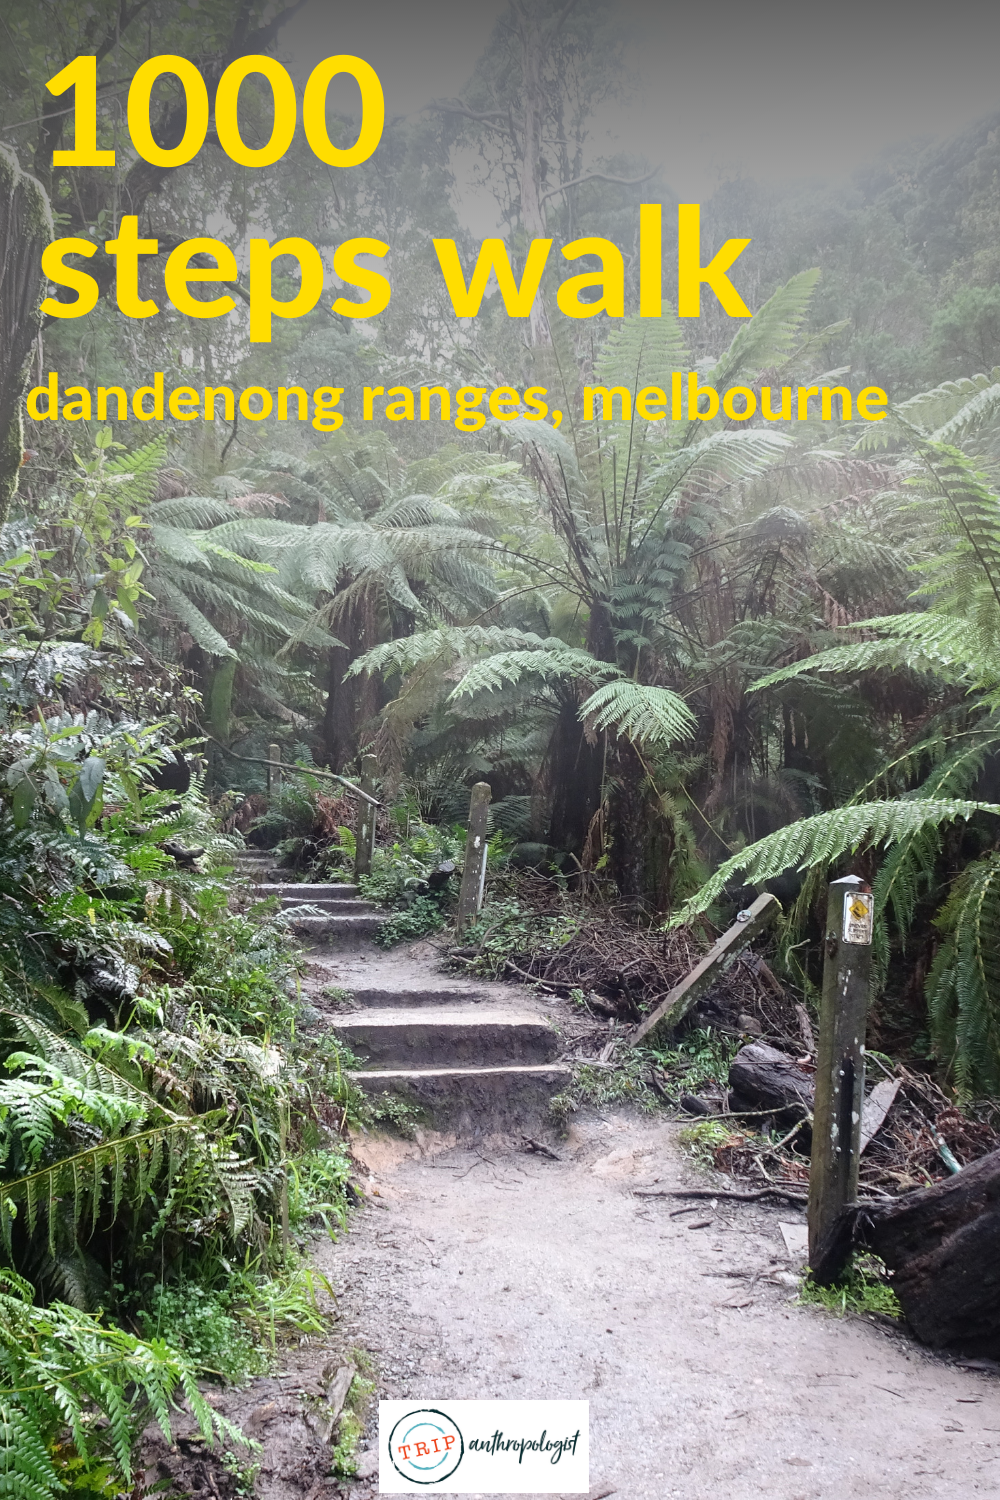 Everything you need to walk the 1000 Steps of the Kokoda Memorial Walking Track in the Dandenong Ranges National Park in Ferntree Gully, Melbourne: how to get there, what to do, when to go and opening times. #melbournetravel #1000steps #dandenongs